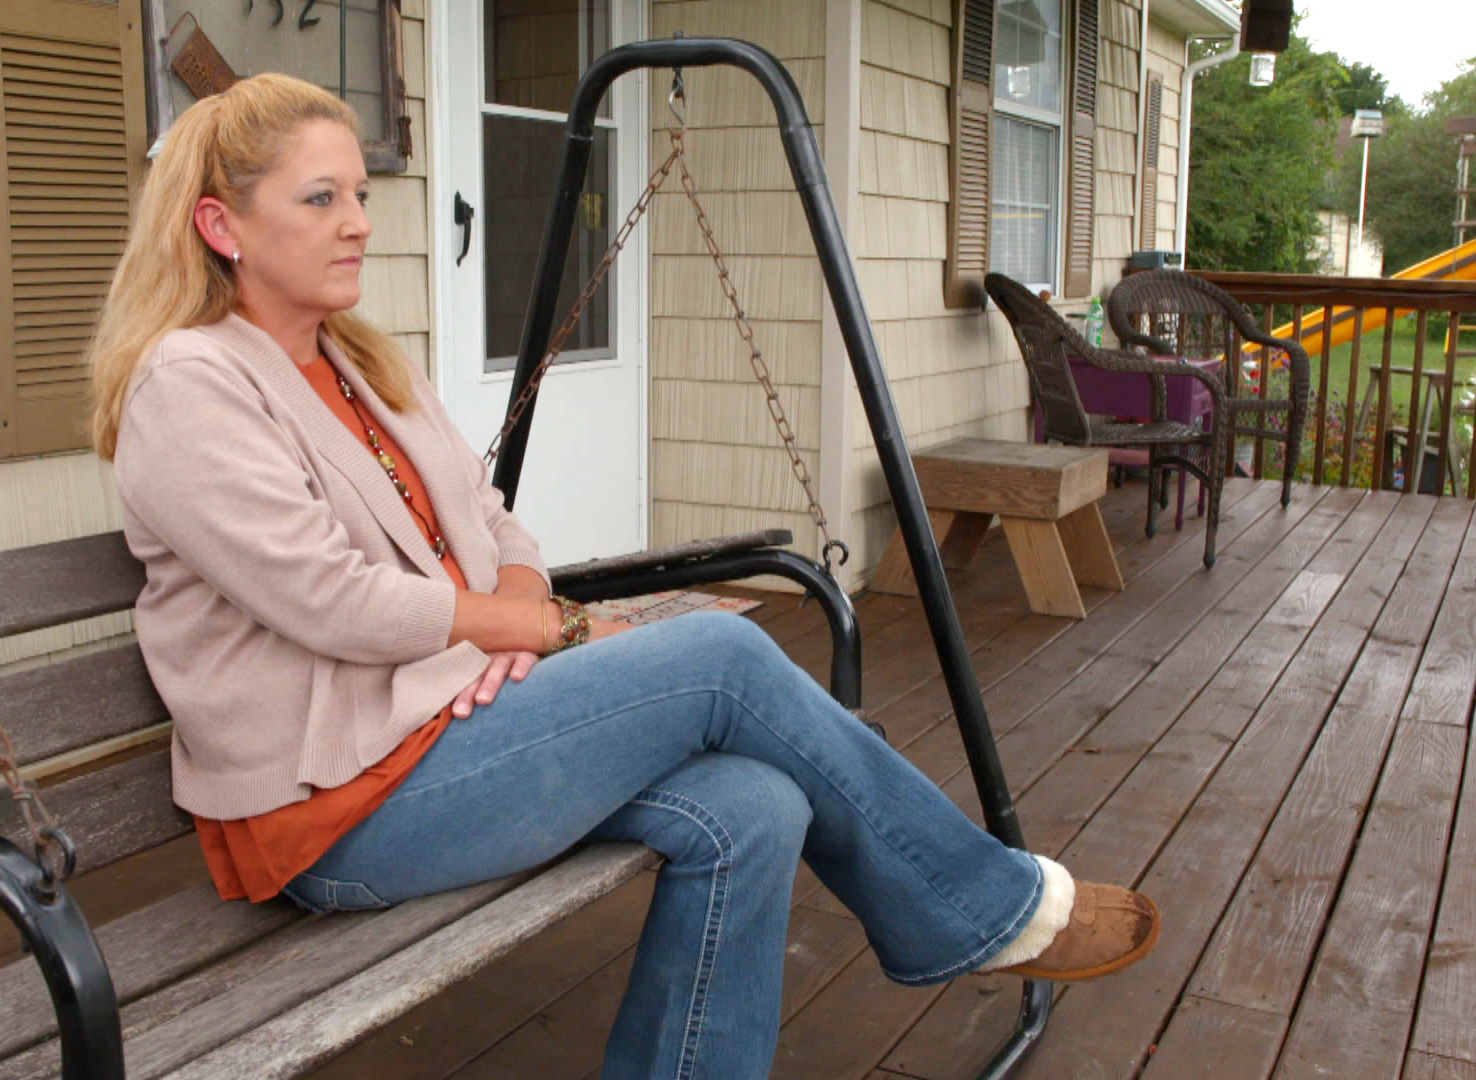 Image: Libby Harris, 45, sits at her home in Tennessee.